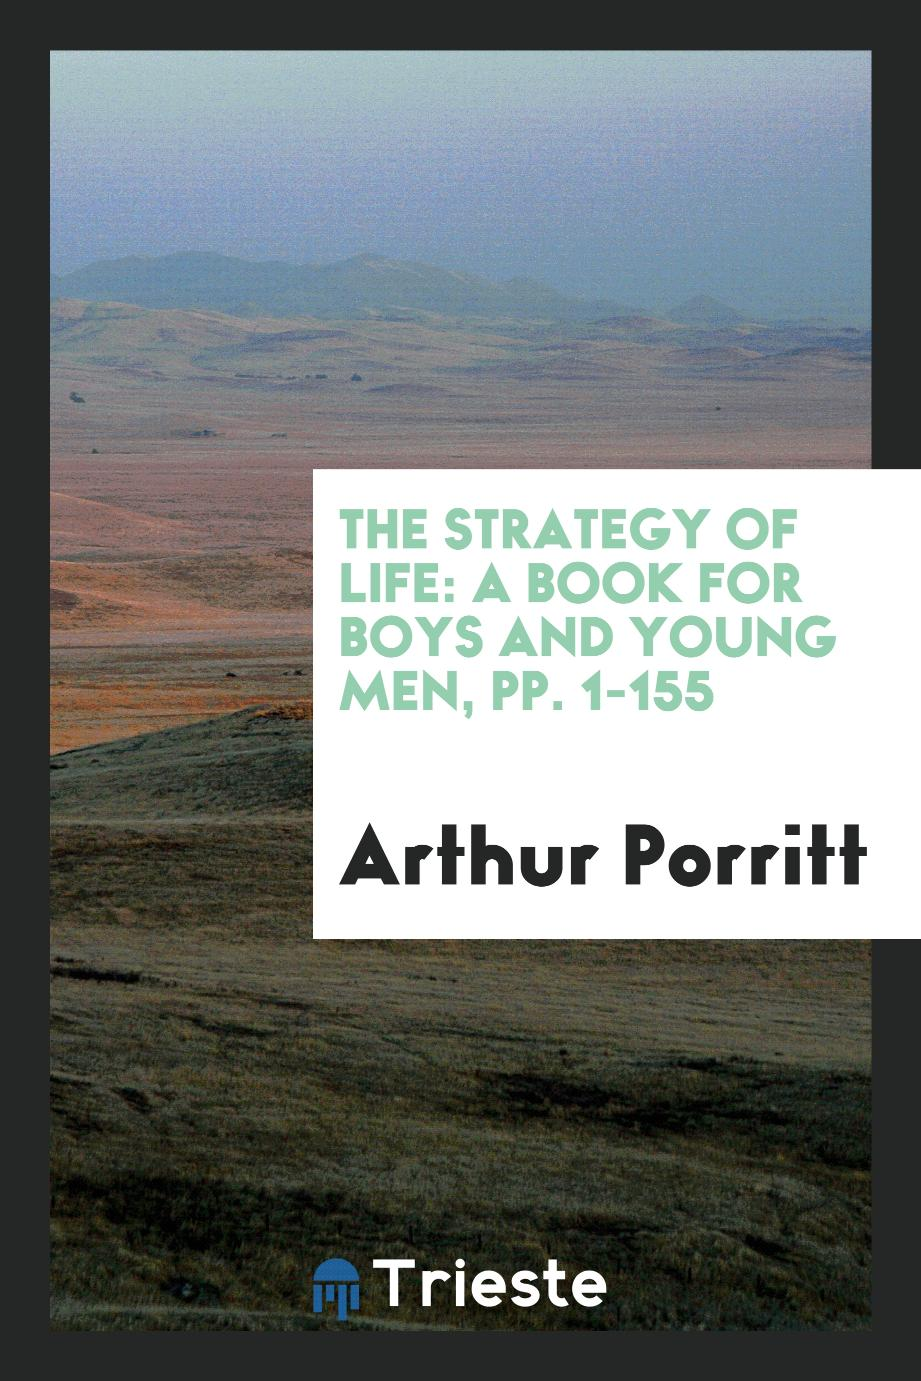 The Strategy of Life: A Book for Boys and Young Men, pp. 1-155